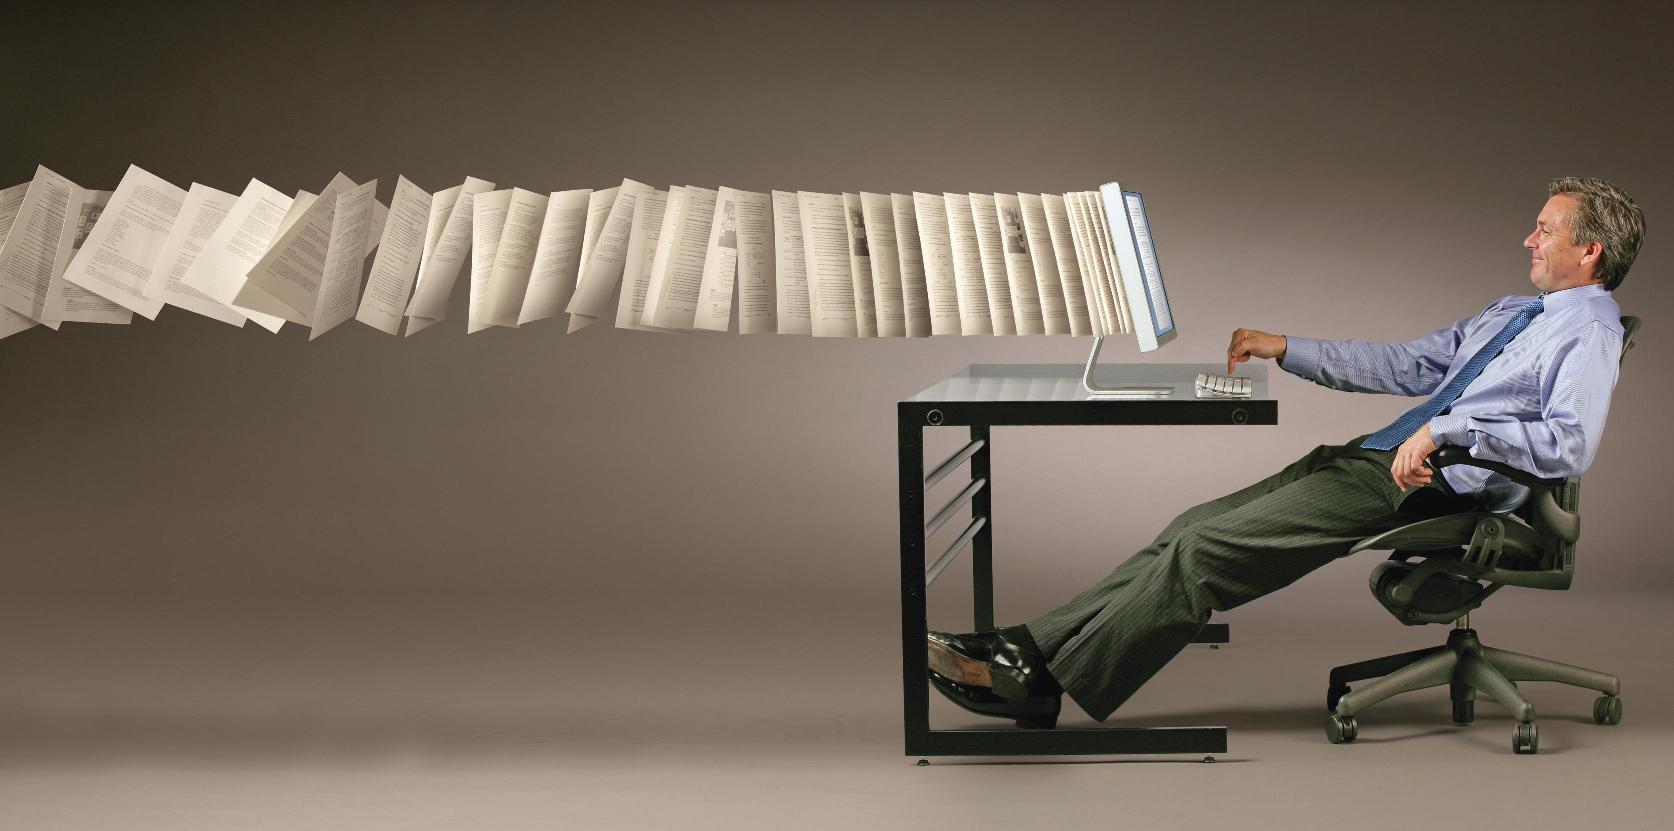 Don't get left behind.. Choose Paperless today